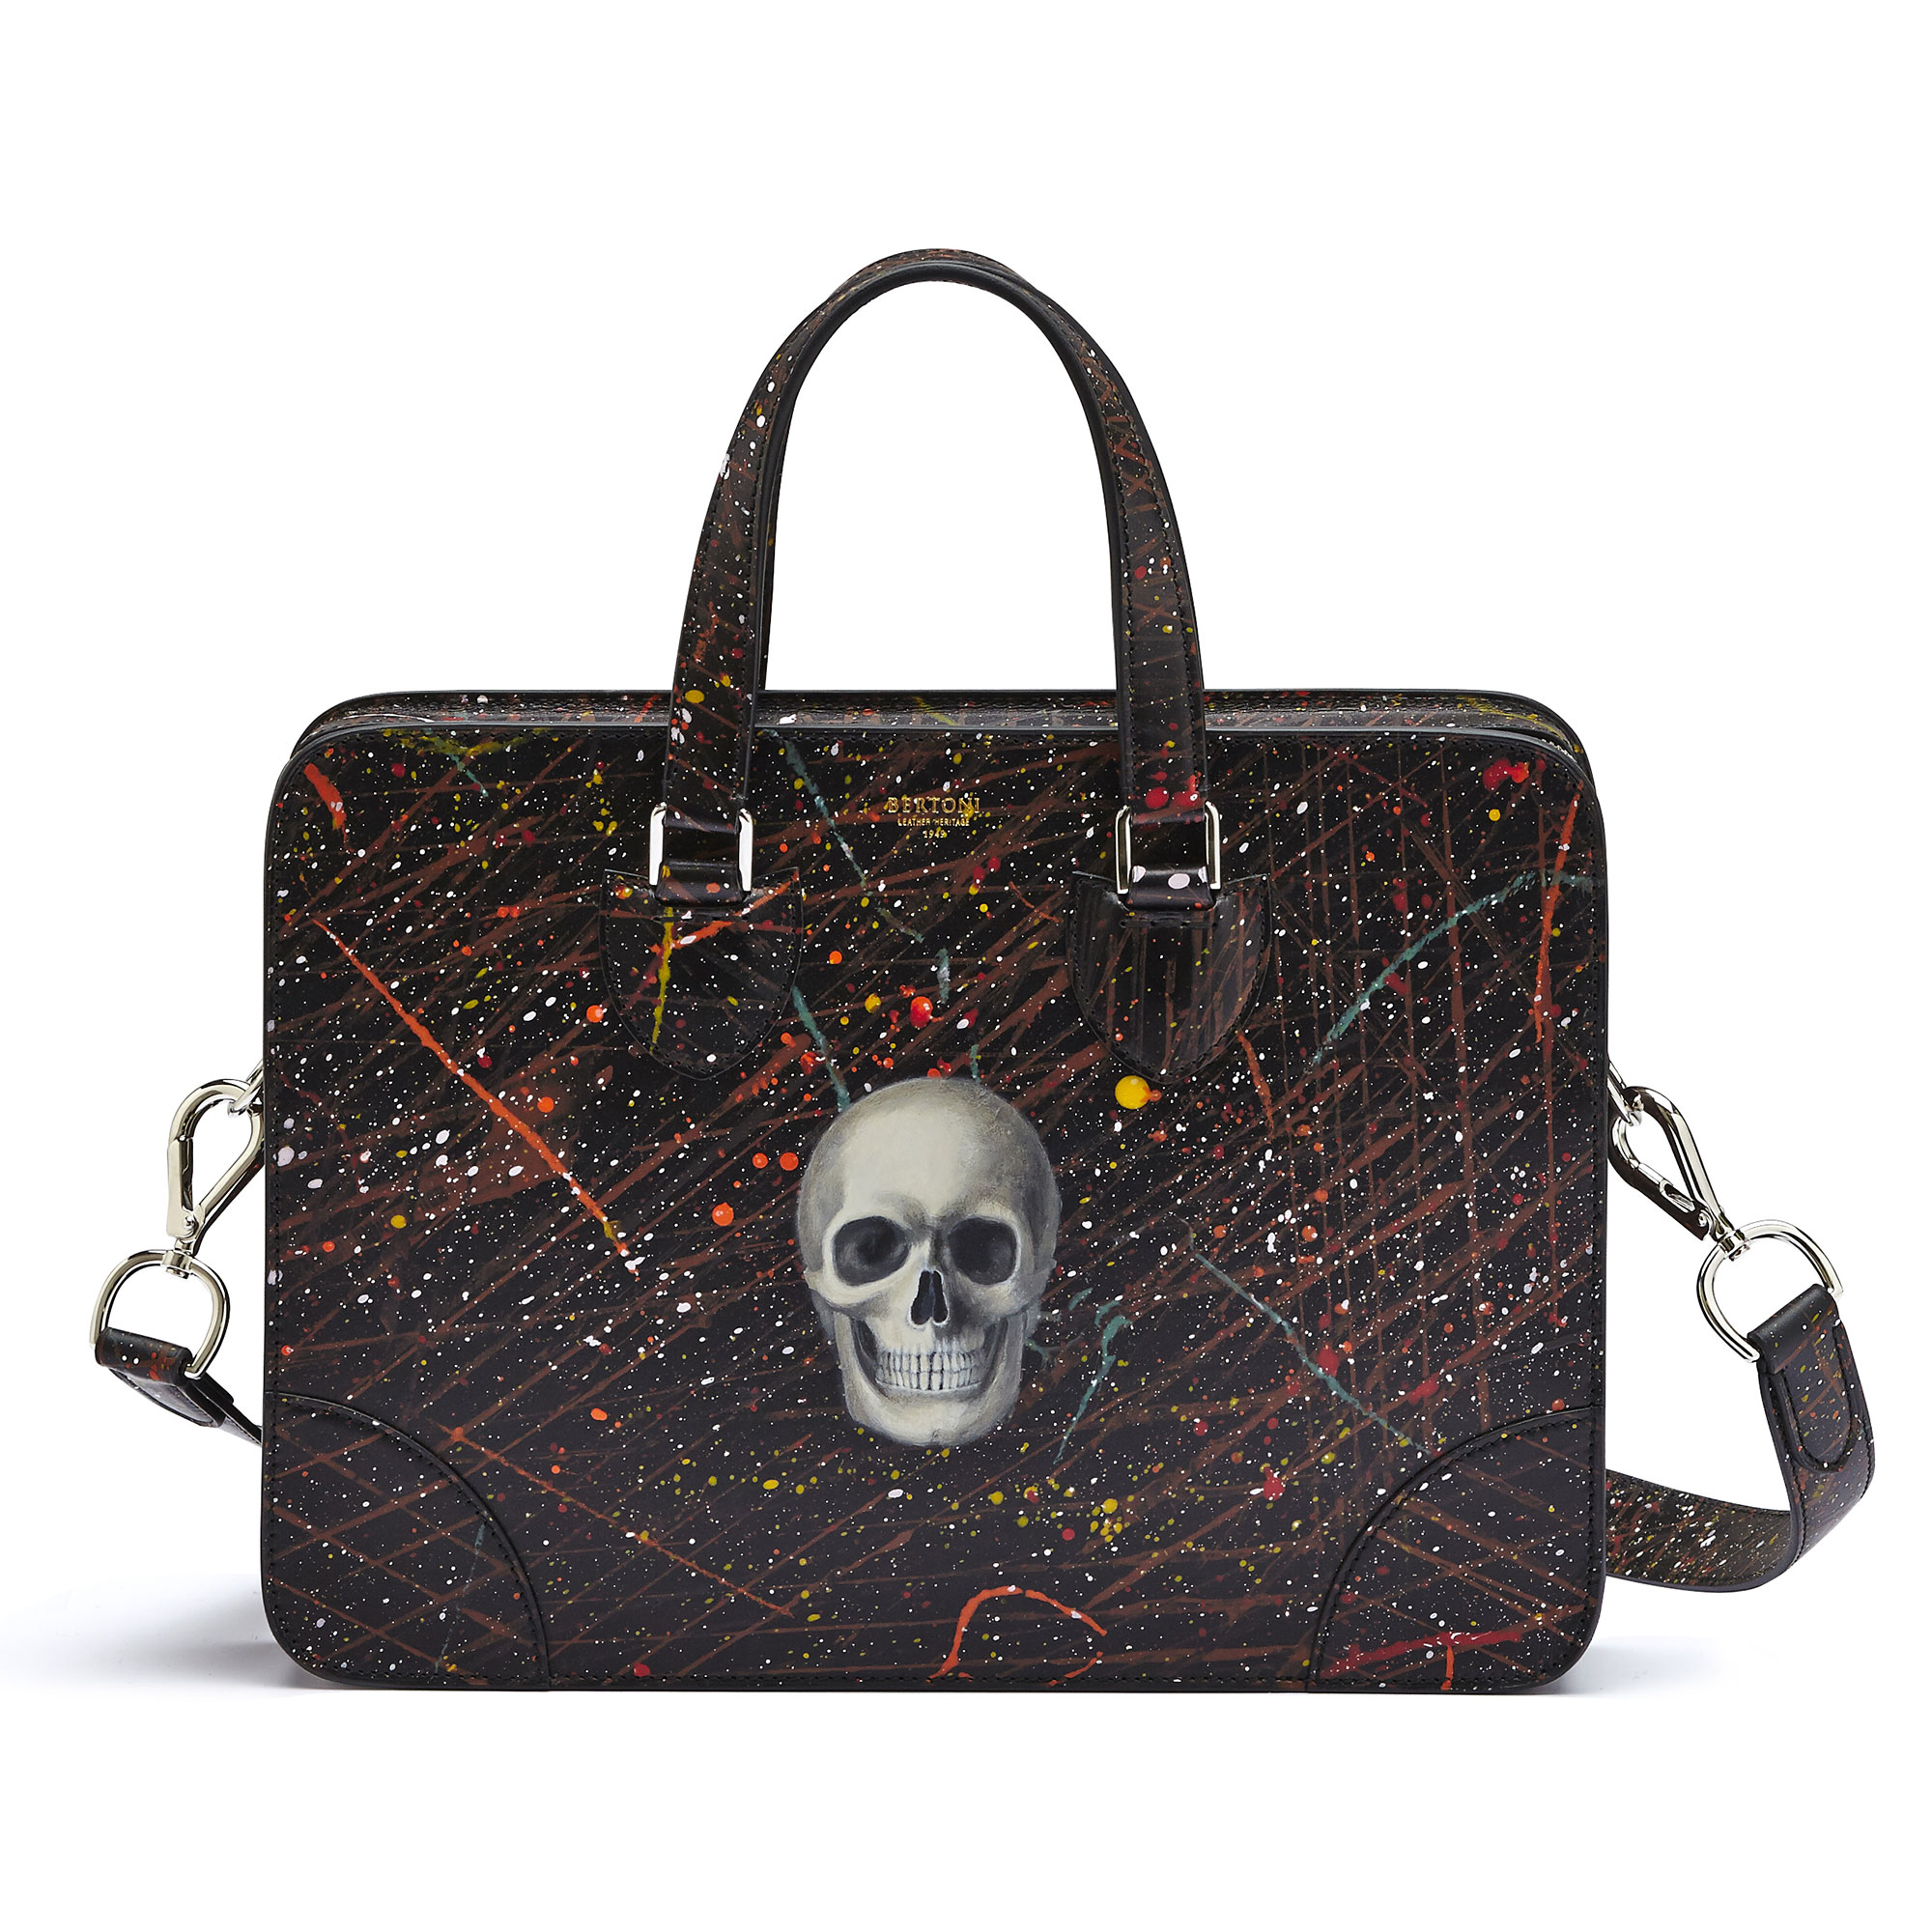 The black with skull french calf Double Handle 37 by Bertoni 1949 04